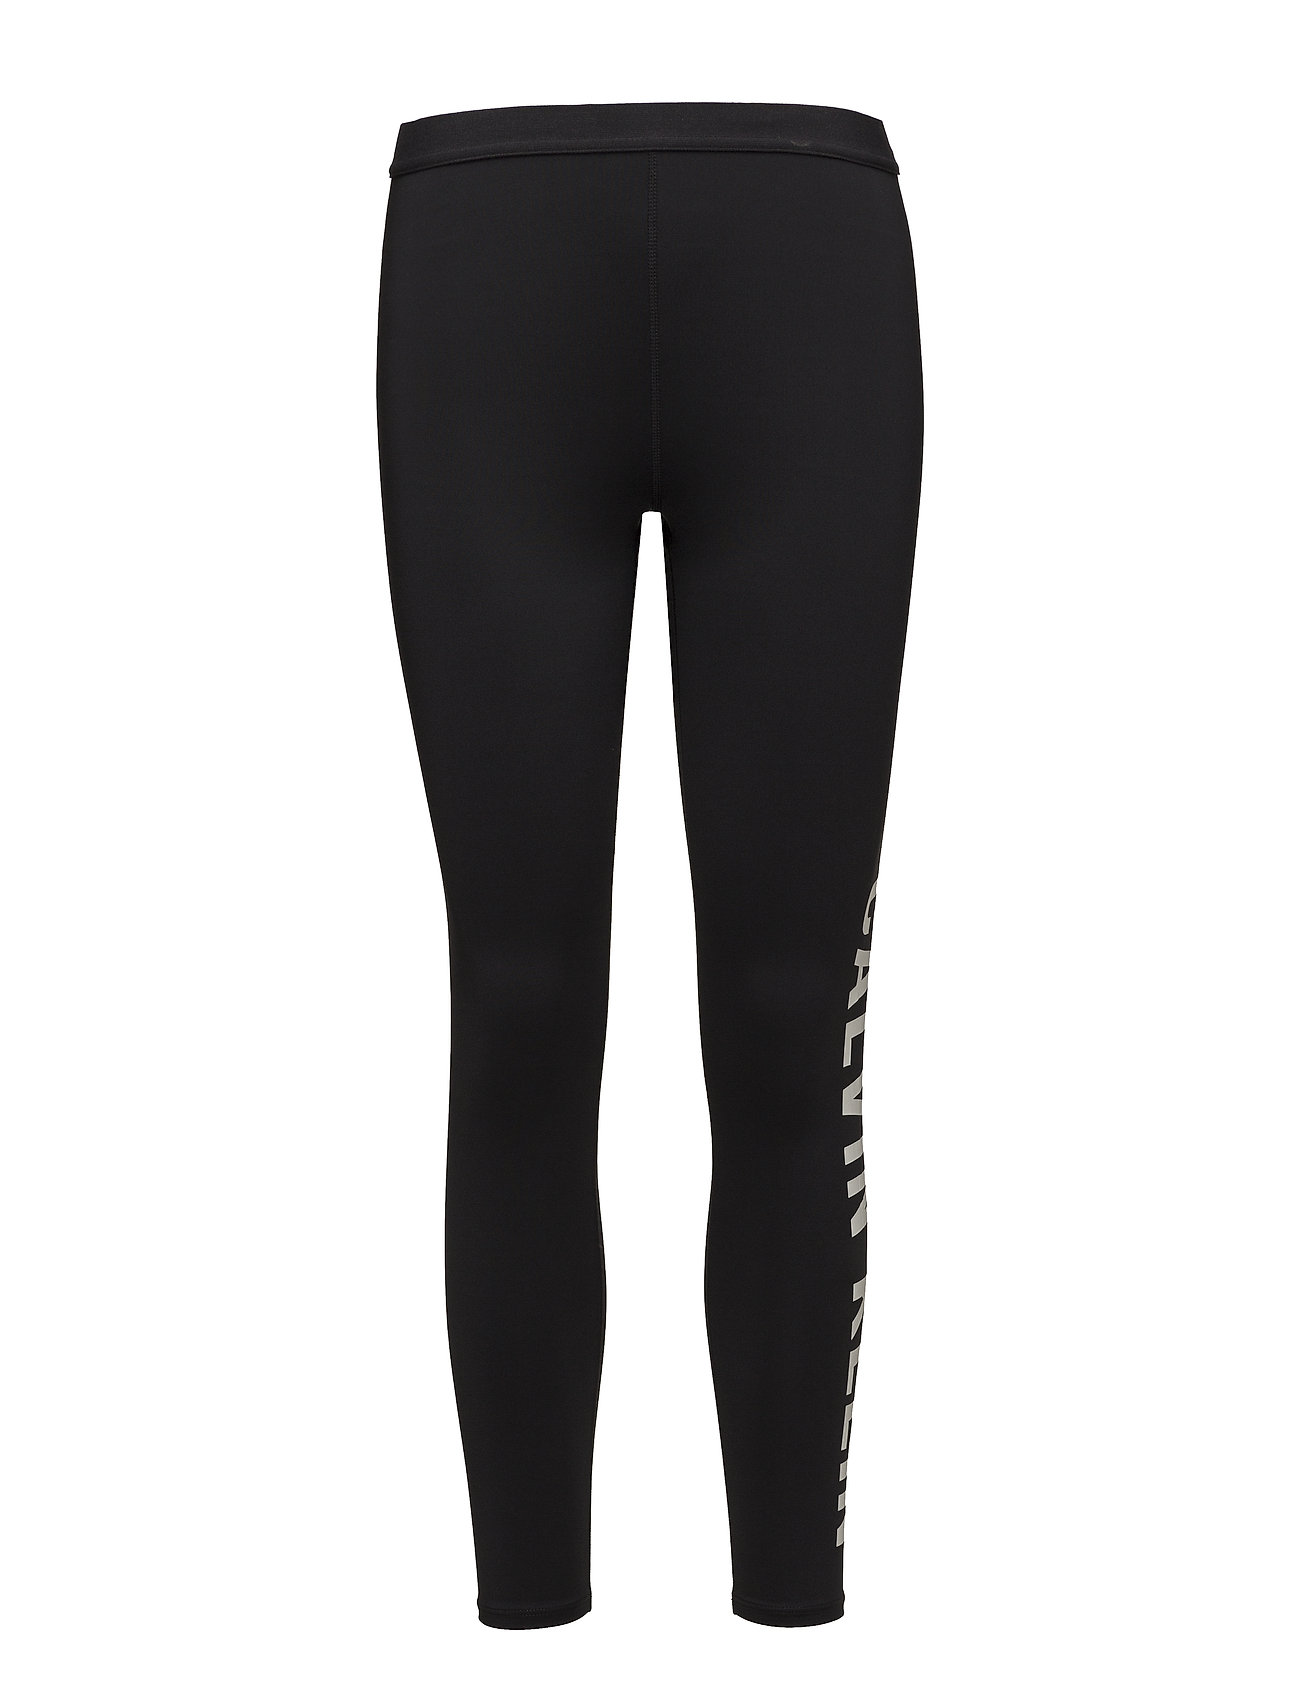 Calvin Klein Performance 7/8 TIGHT LOGO LEG - CK BLACK